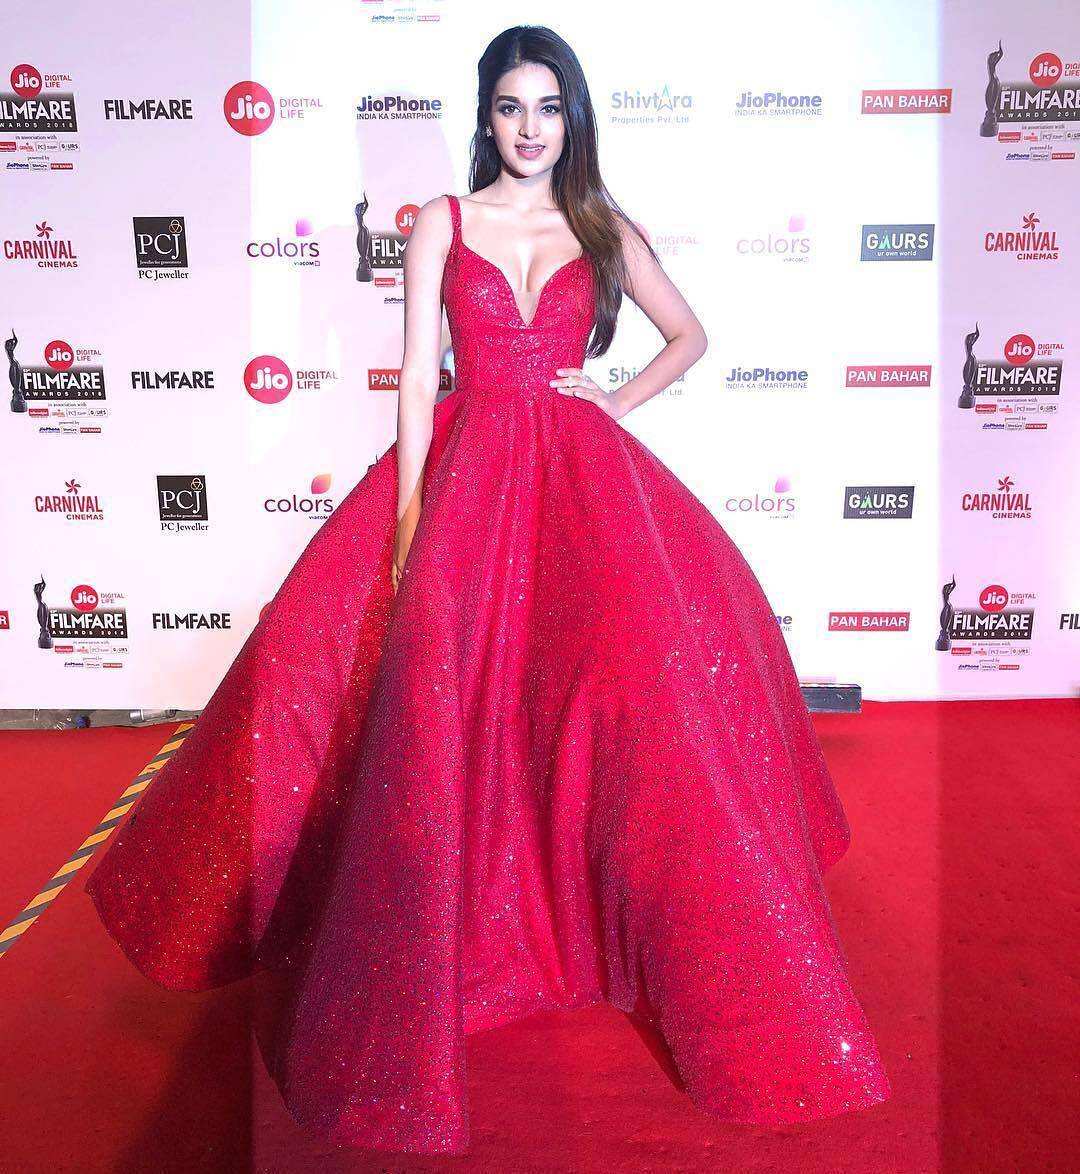 Jio Filmfare Awards 2018: These celebrities look absolutely stunning in their outfits!